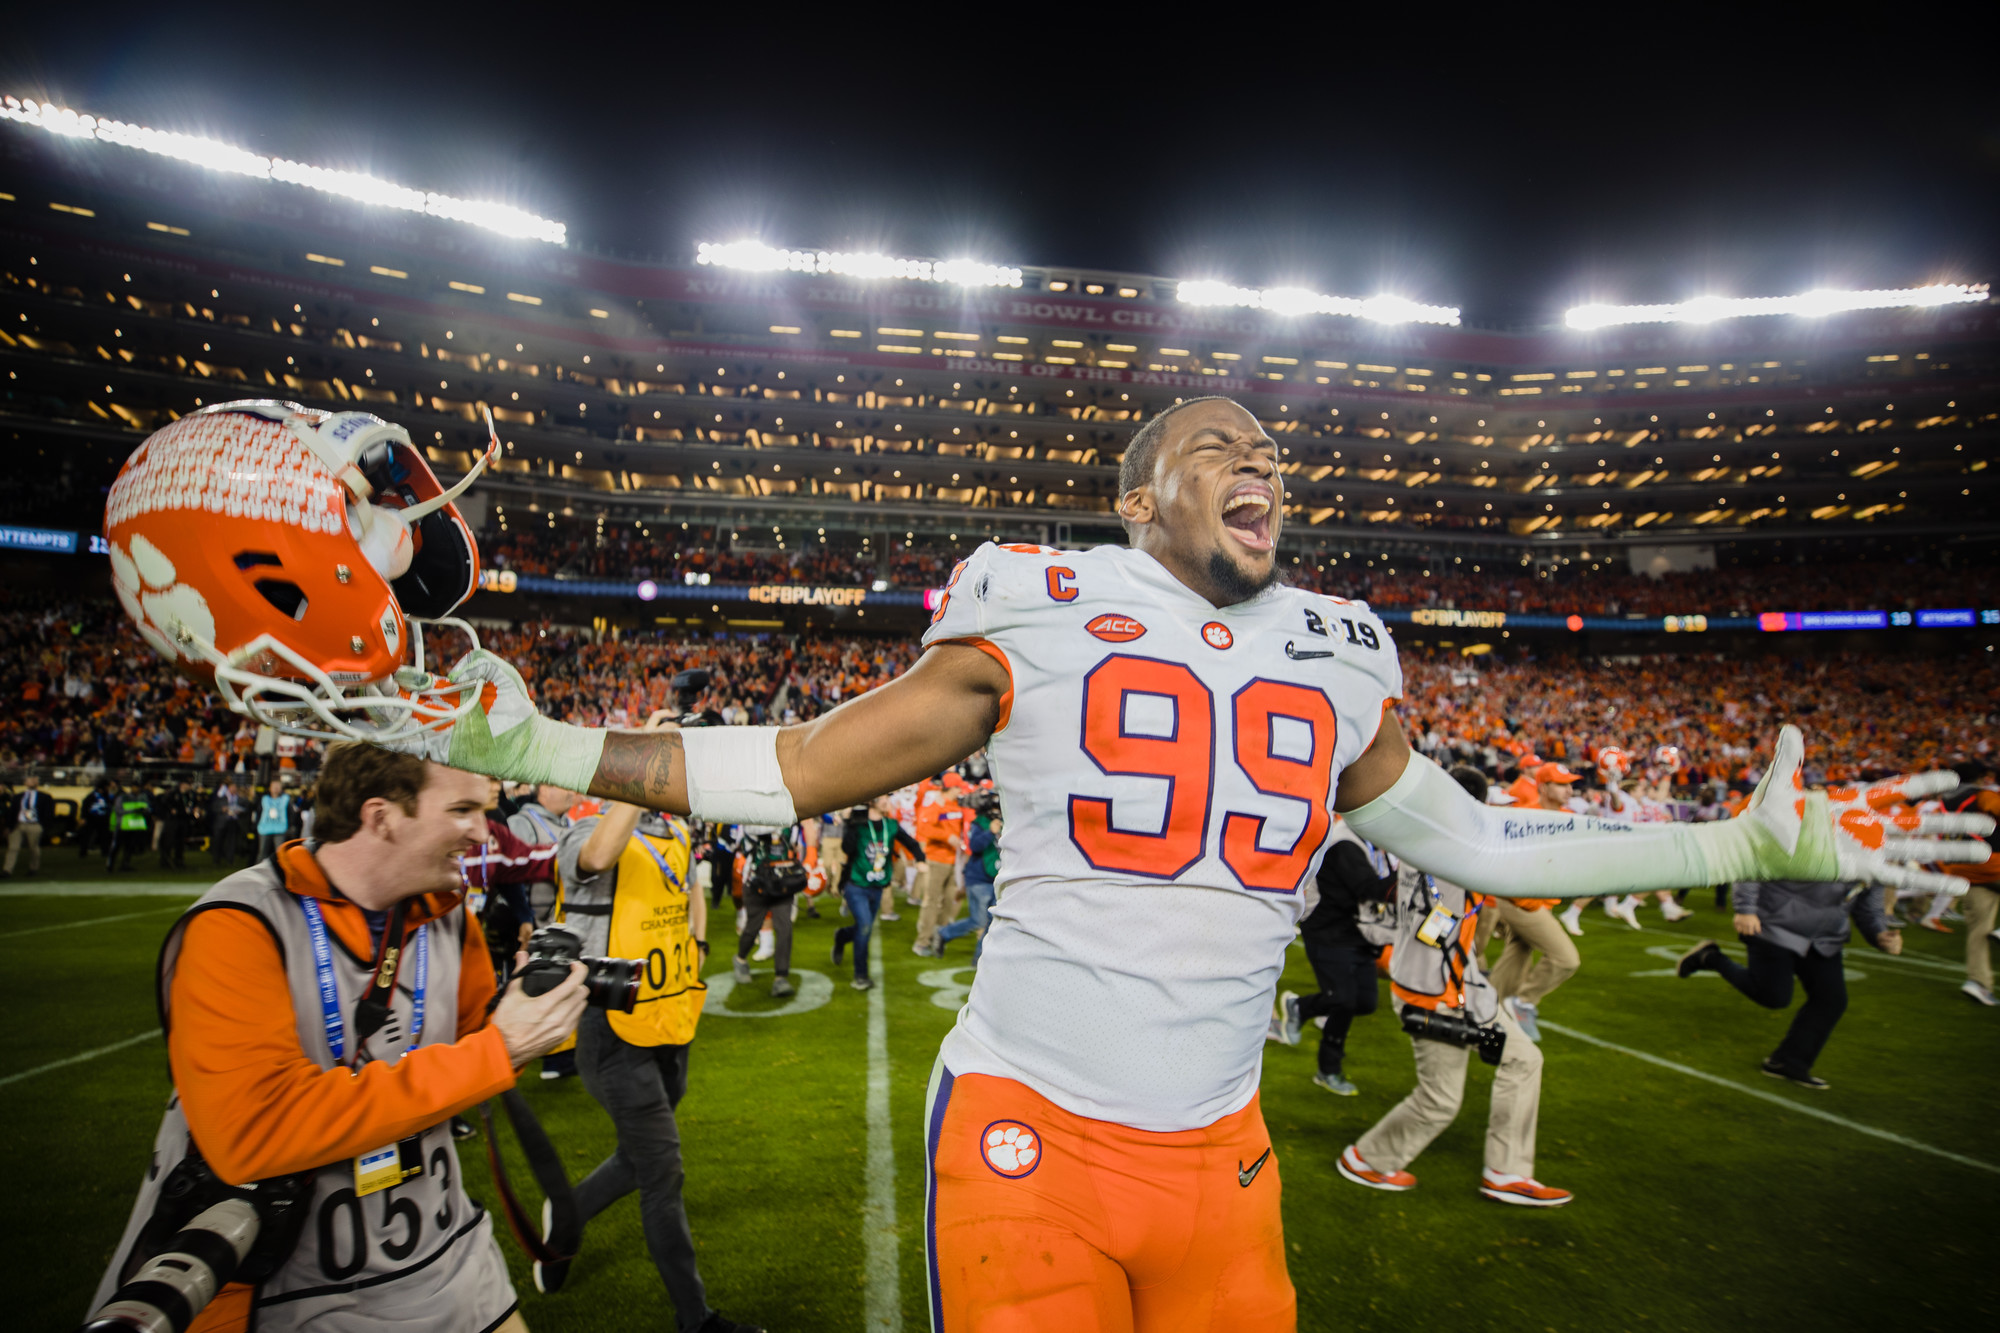 Clemson defensive end Clelin Ferrell celebrates on the field at Levi's Stadium after the Tigers routed Alabama to win the 2018 CFP National Championship in Santa Clara, California, on Monday, Jan. 7.